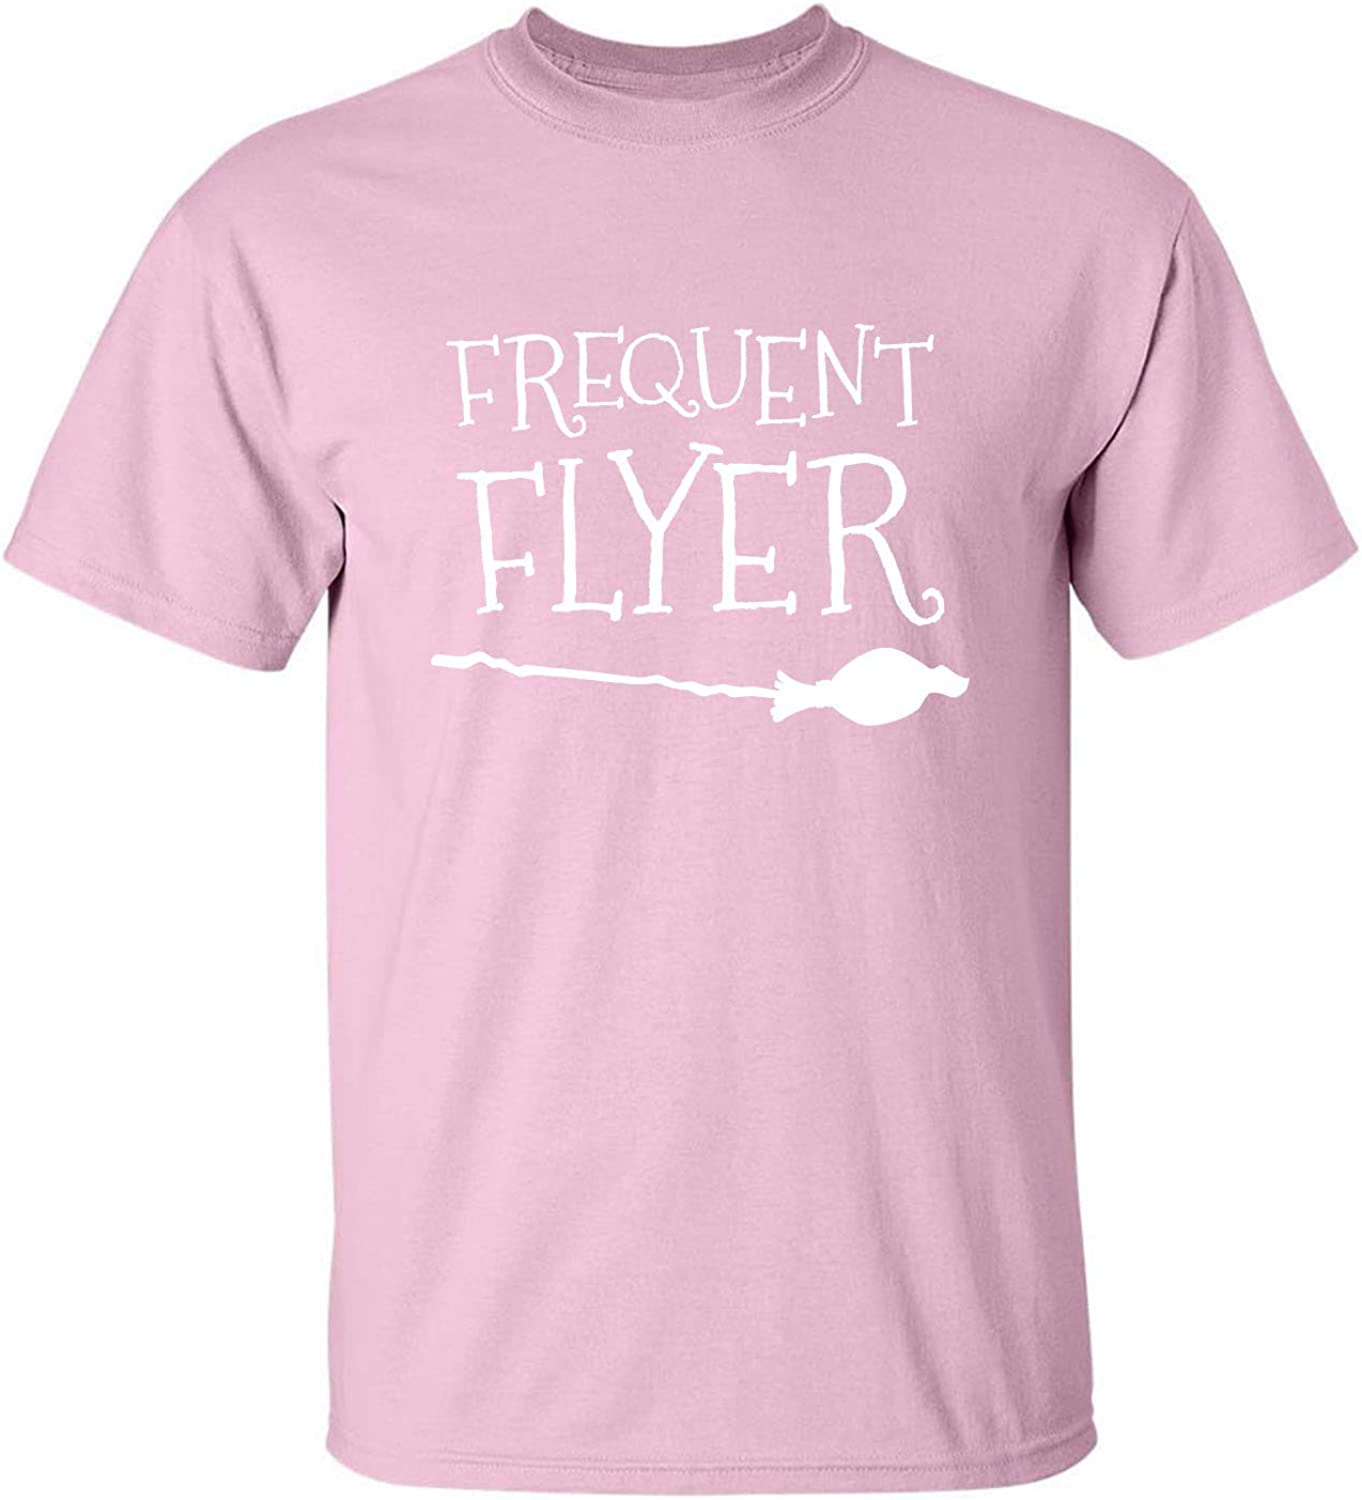 Frequent Flyer Adult T-Shirt in Pink - XXXX-Large